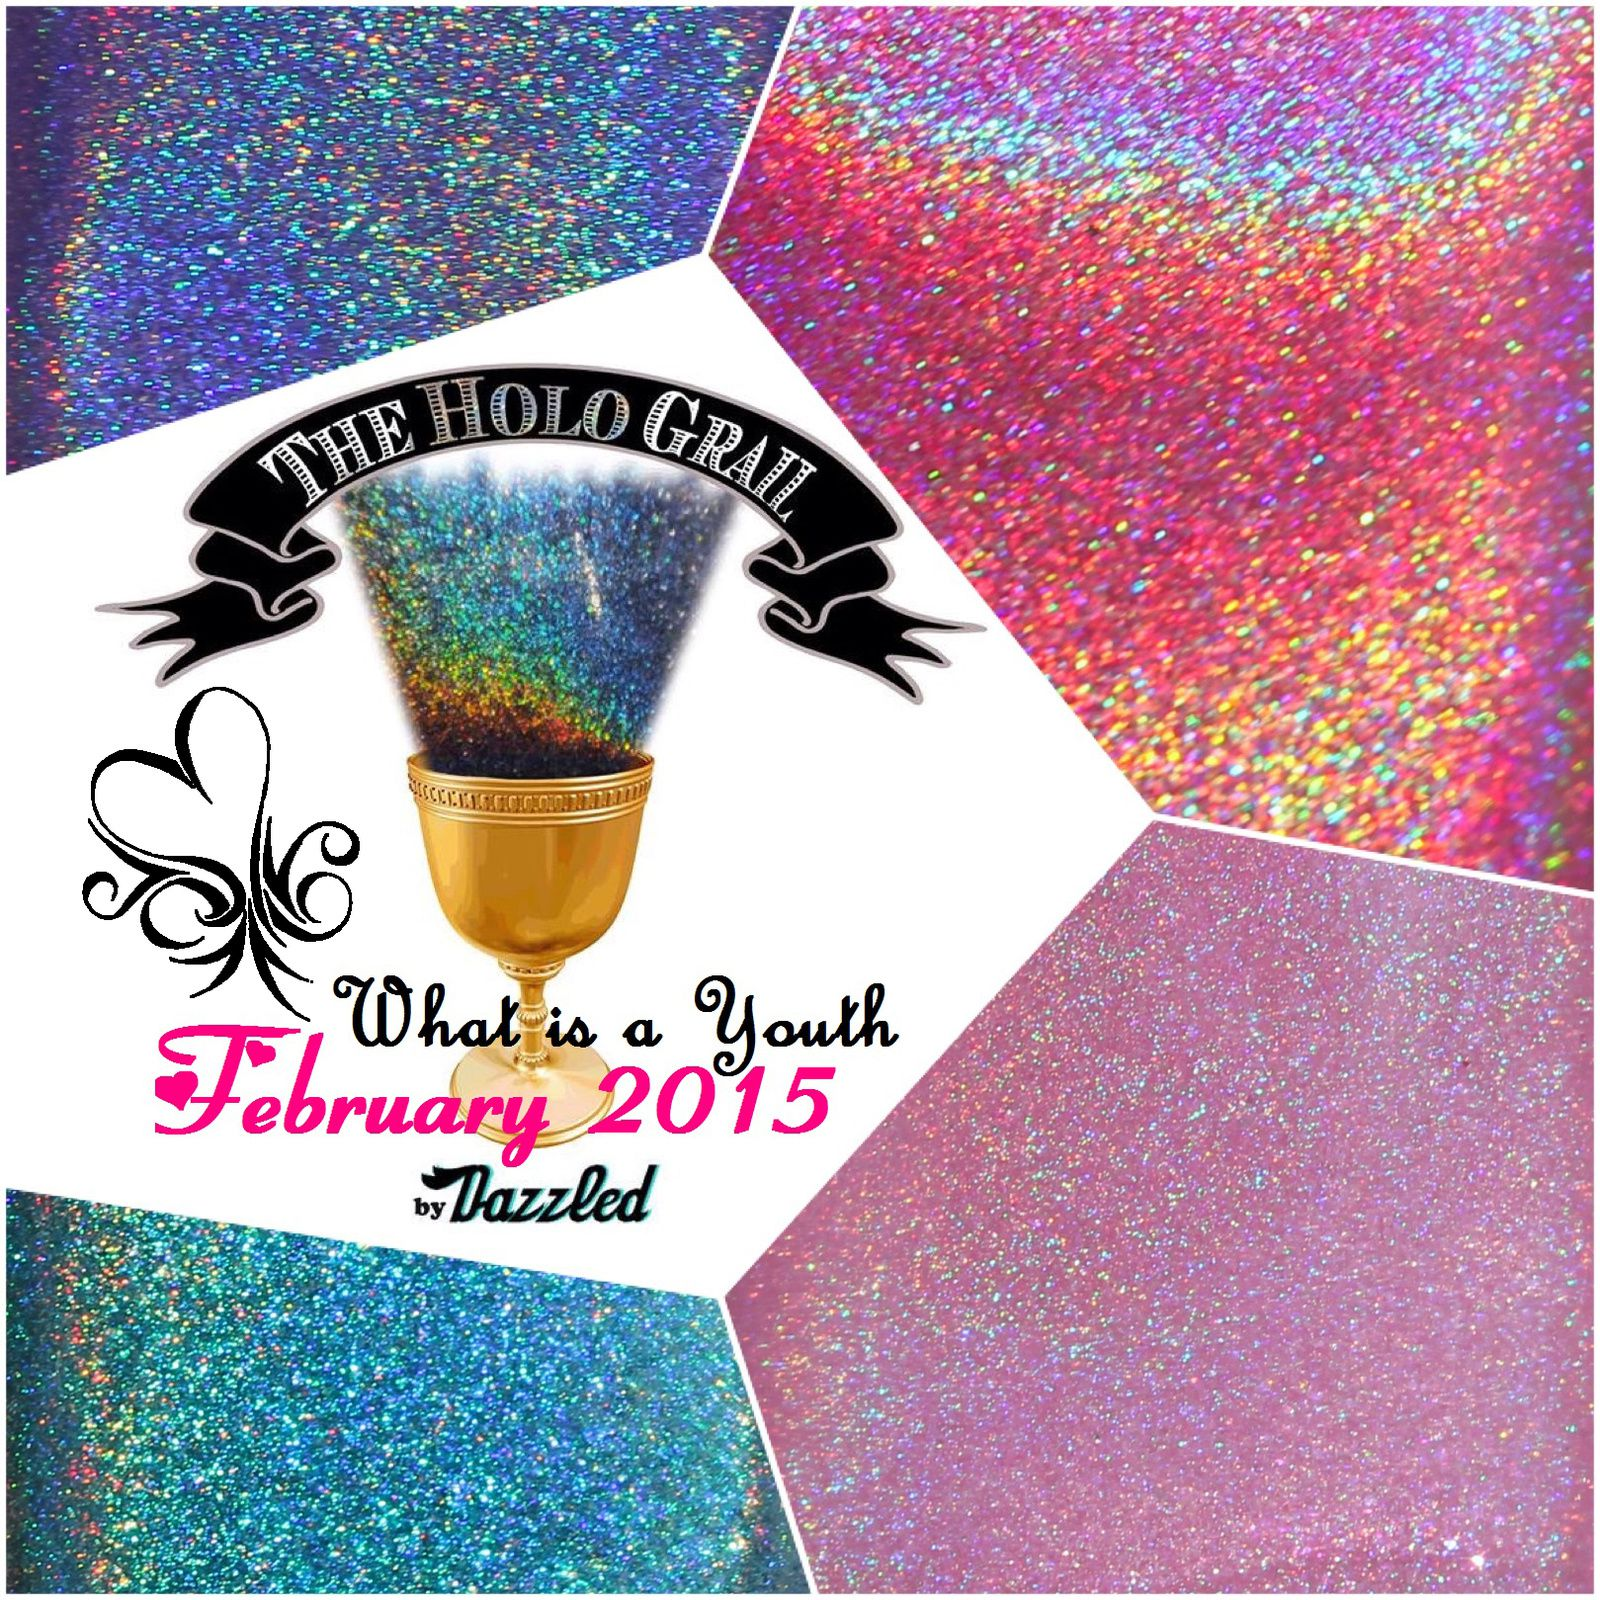 The Holo Grail Box by Dazzled - February 2015 - What is a Youth